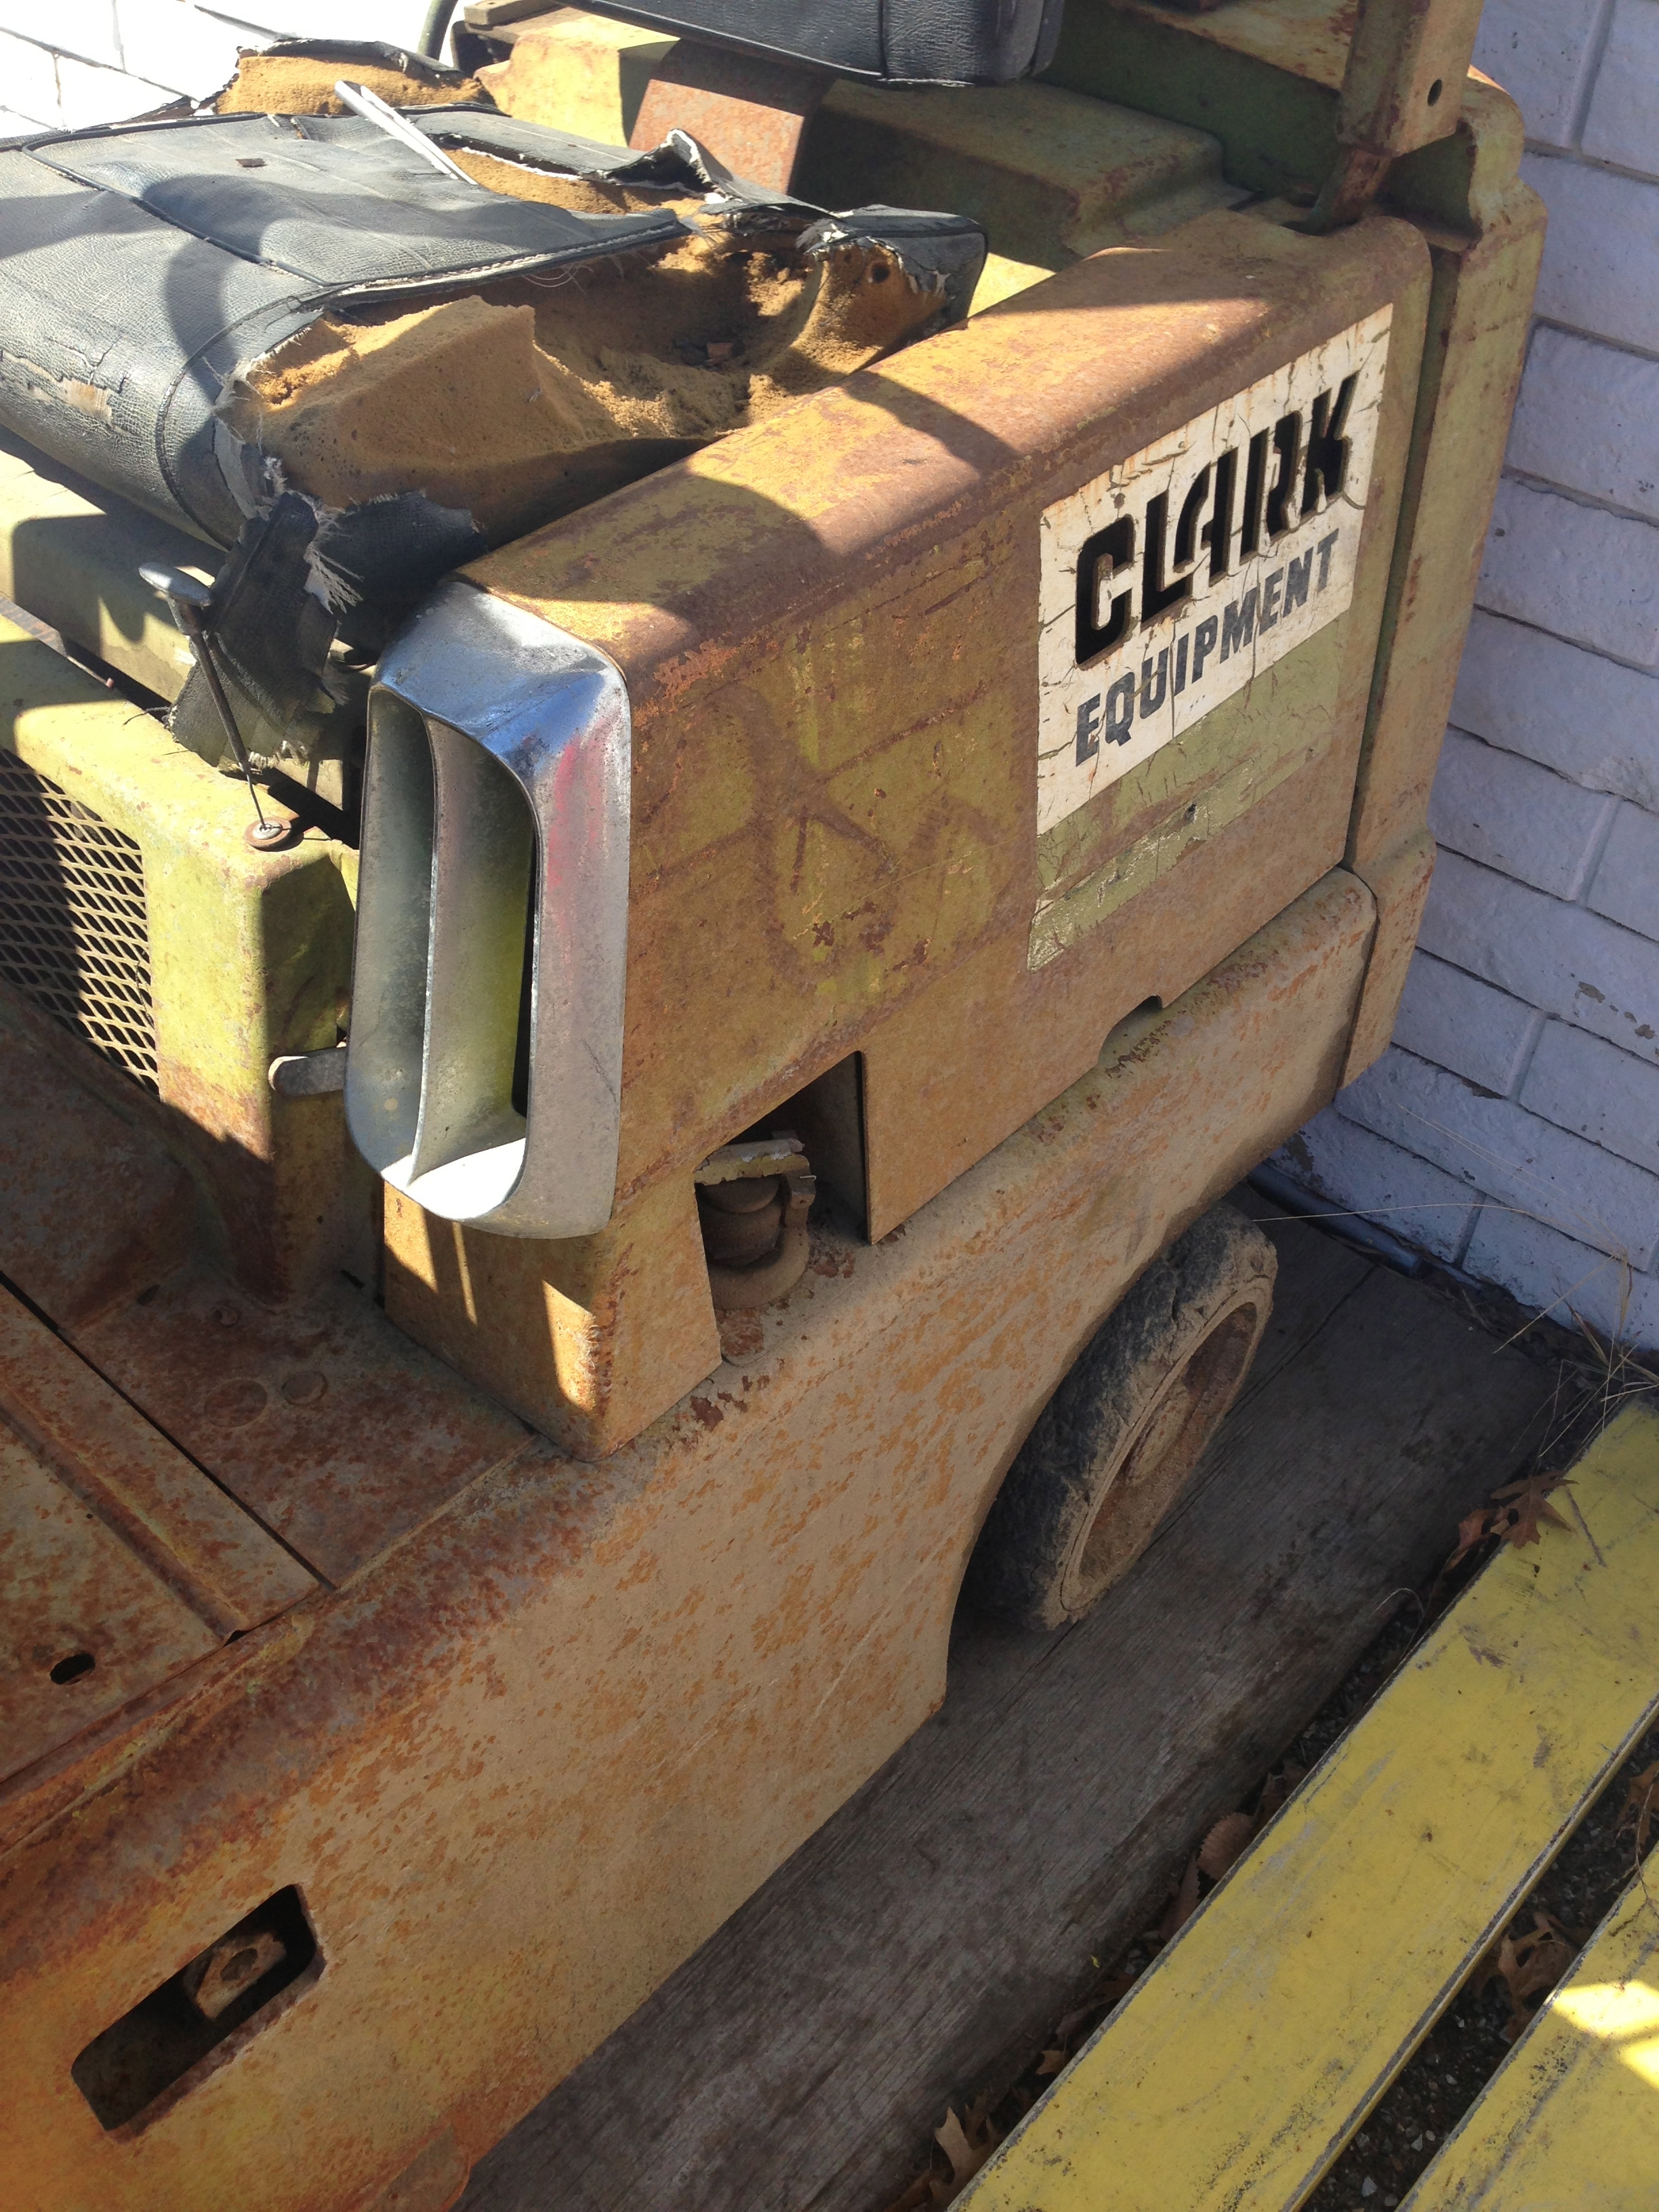 Can someone help me identify this clark forklifts year?